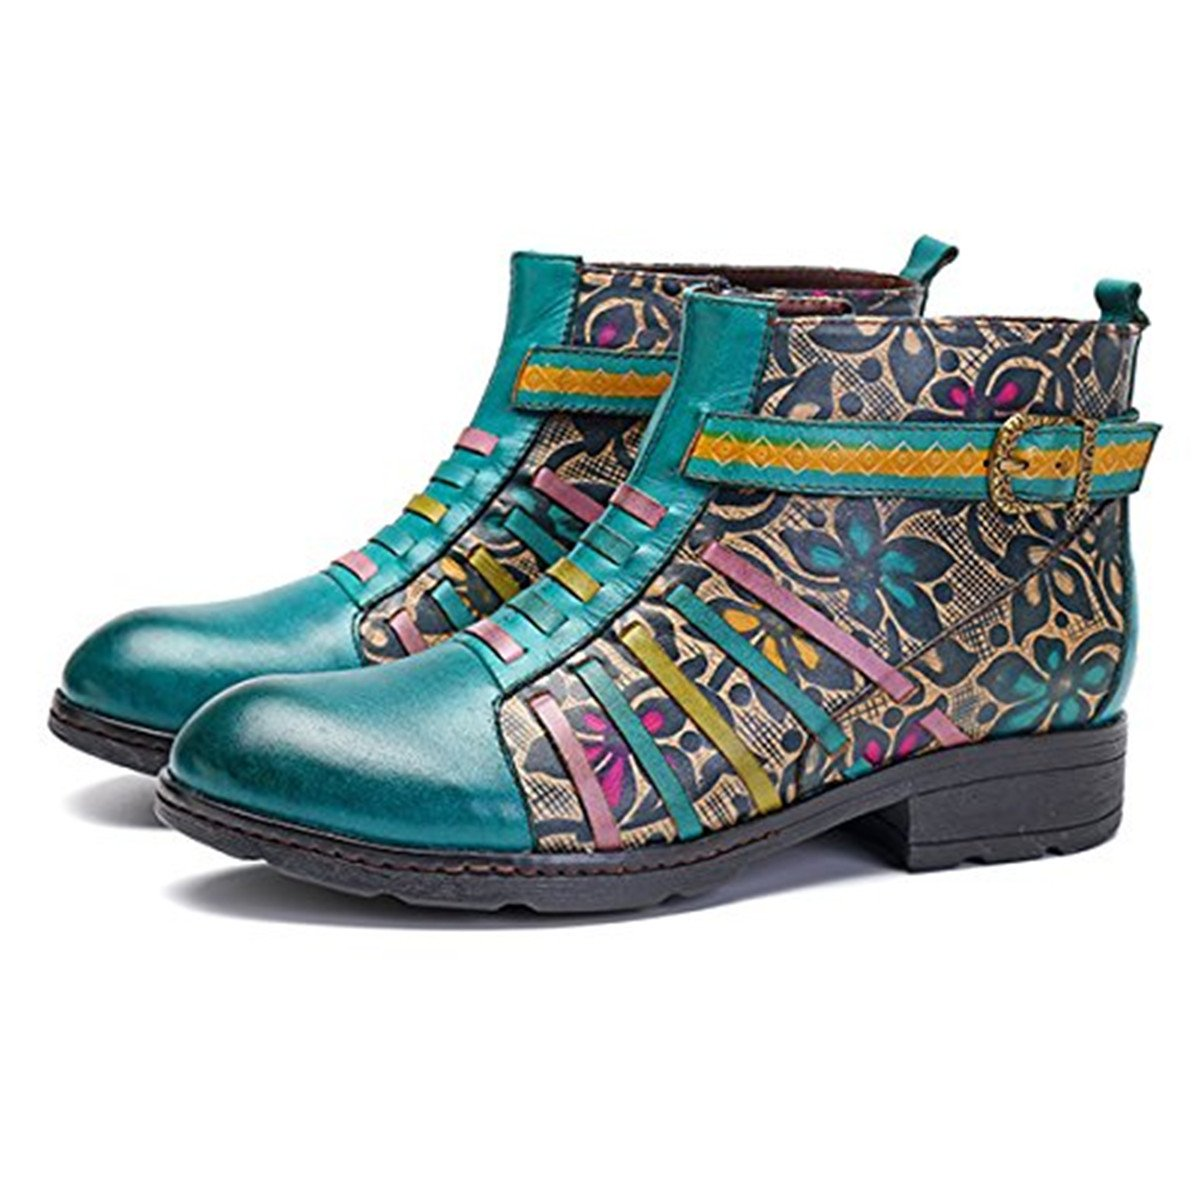 89f64e6a504e8 Amazon.com: Socofy Leather Ankle Bootie, Women's Vintage Handmade Flat  Retro Buckle Pattern: Shoes